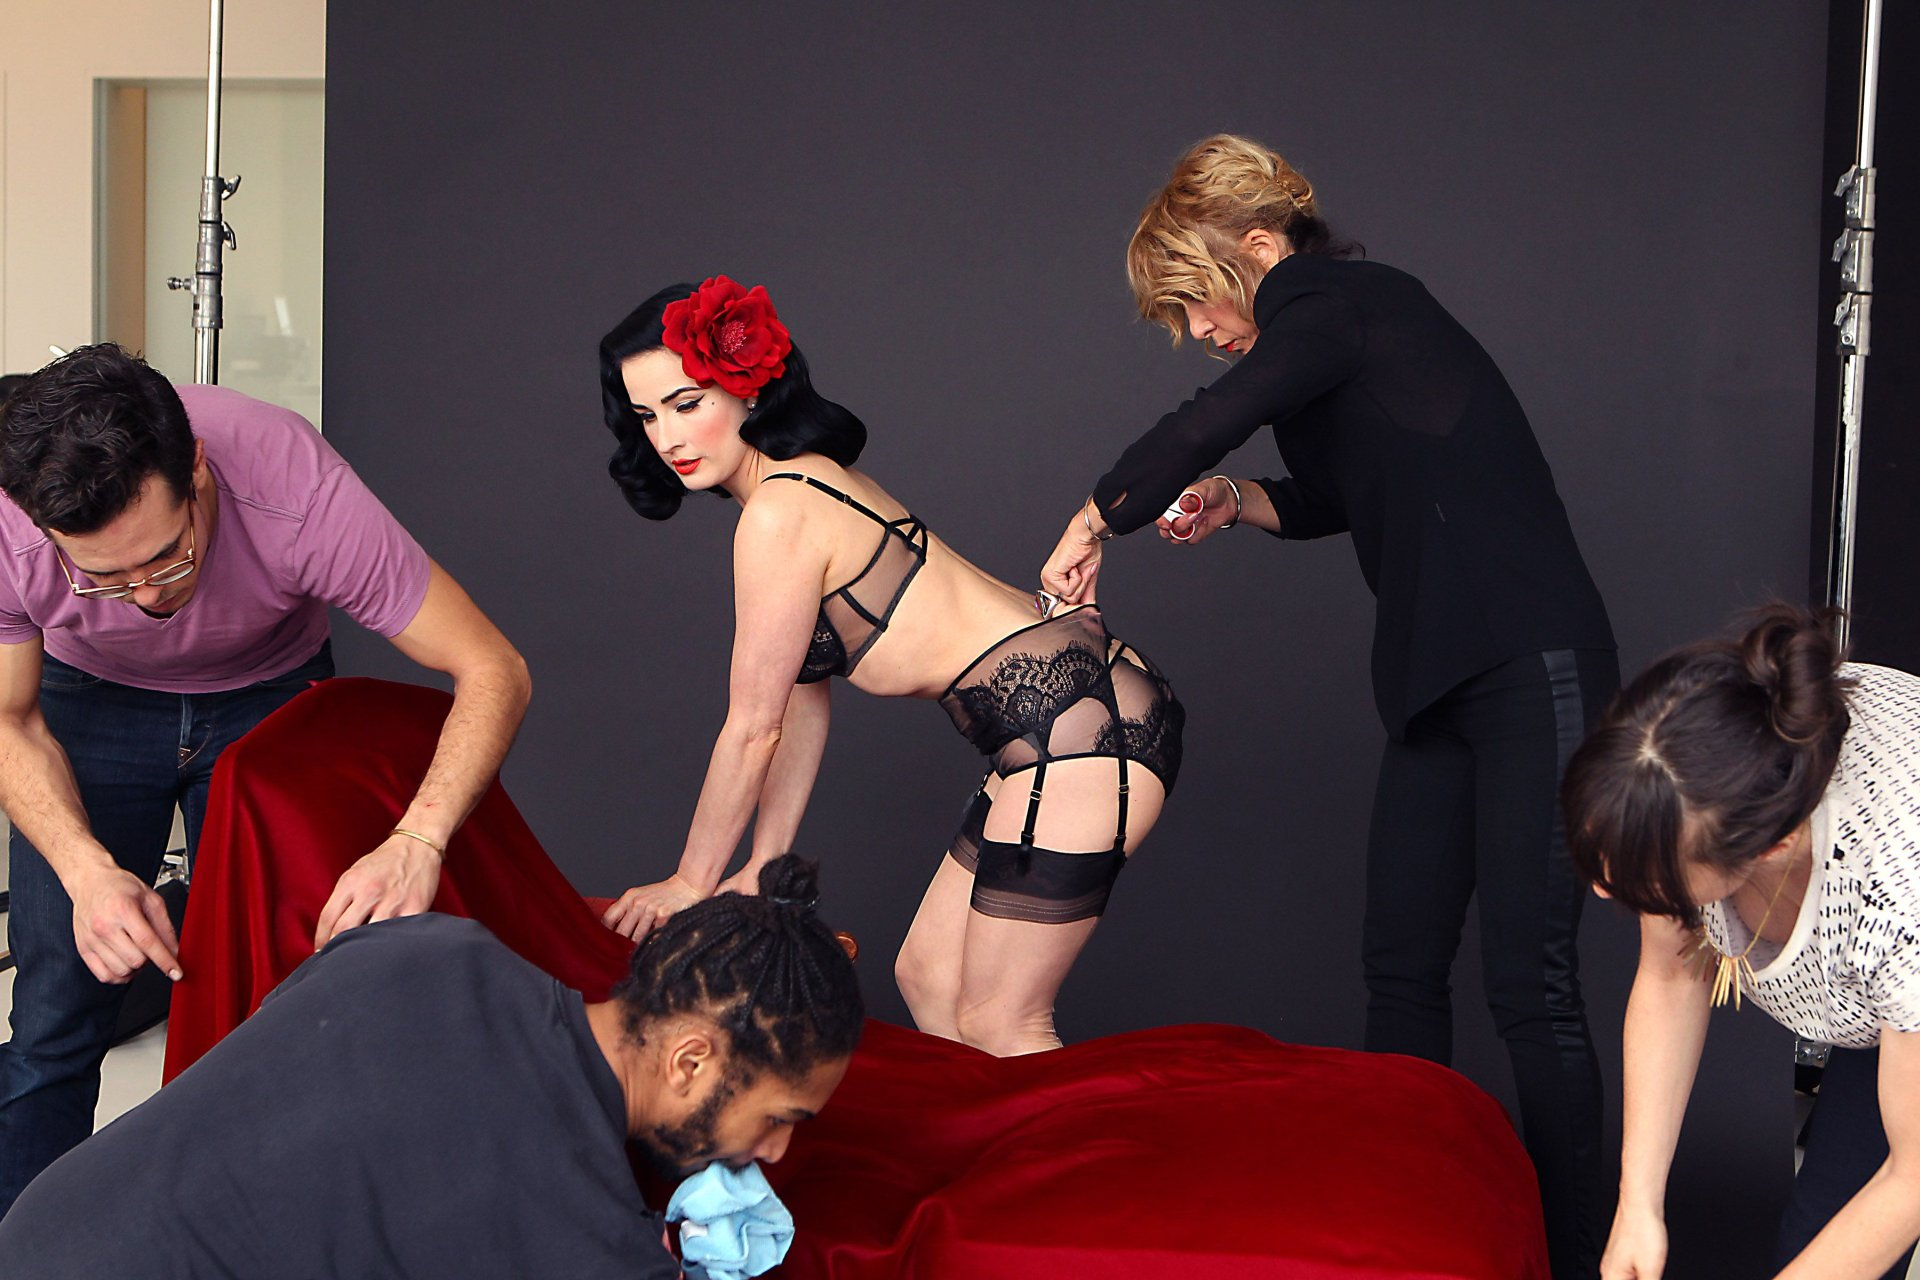 Dita von teese nude pictures at